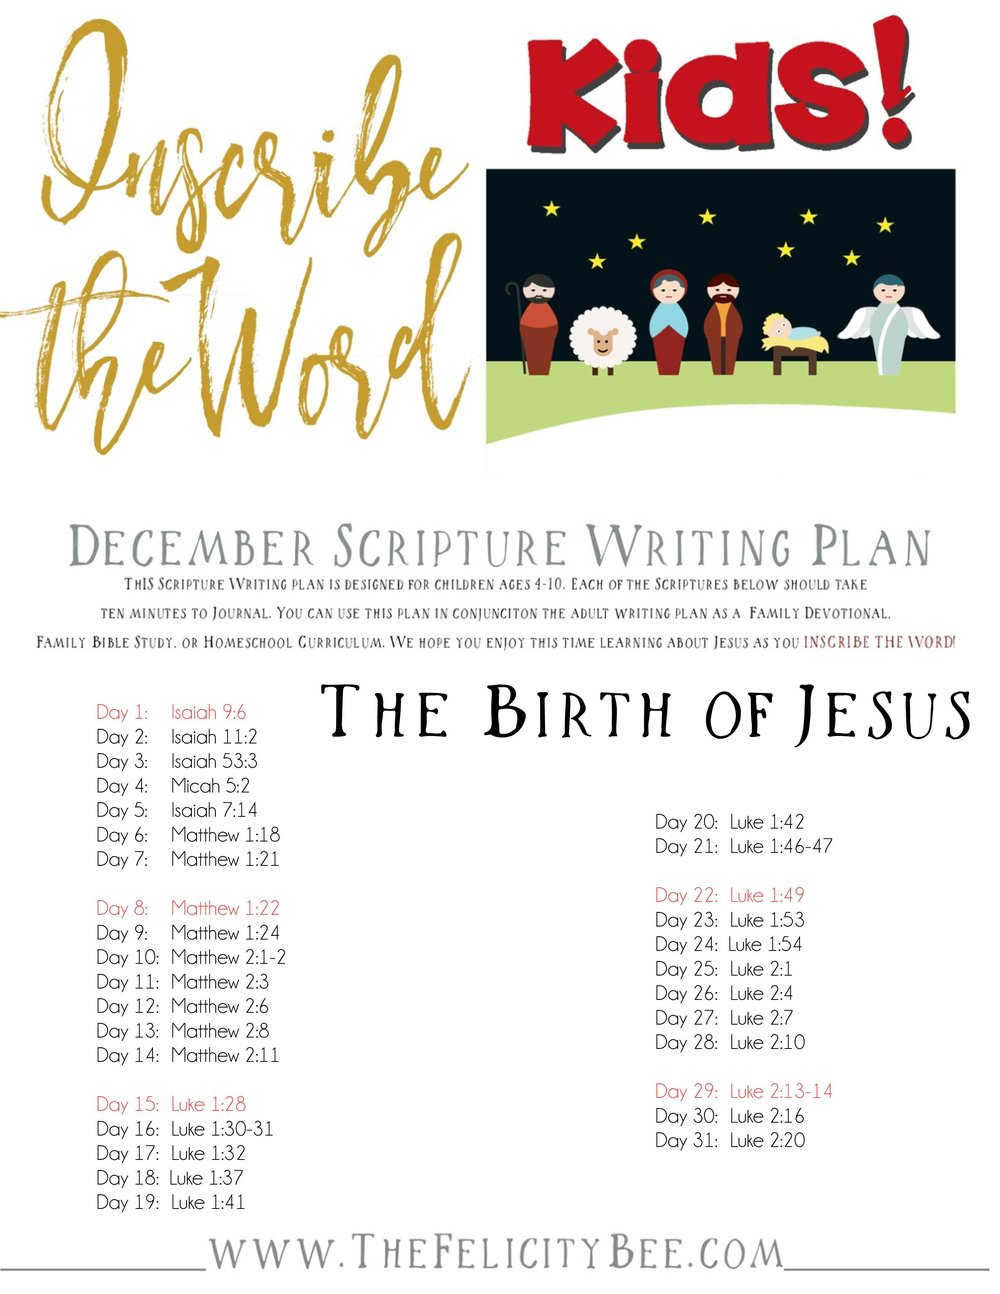 CLICK HERE  to download your Scripture Writing Plan.